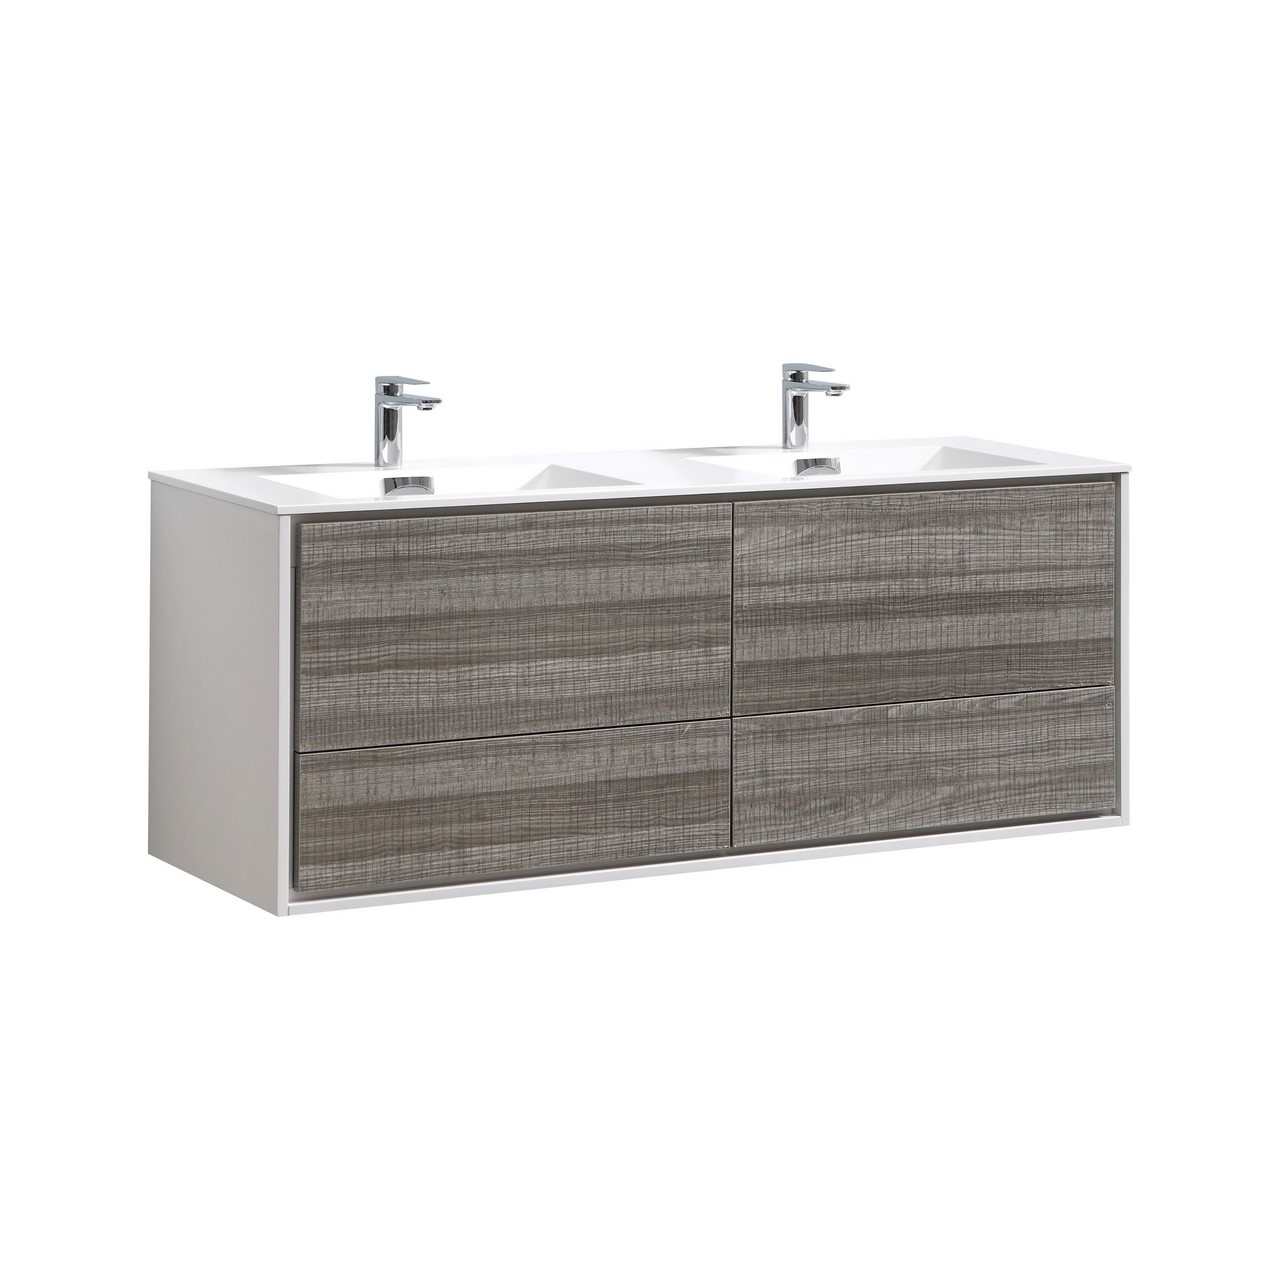 De lusso 60 double sink ash gray wall mount modern bathroom vanity kubebath - Modern bathroom vanity double sink ...